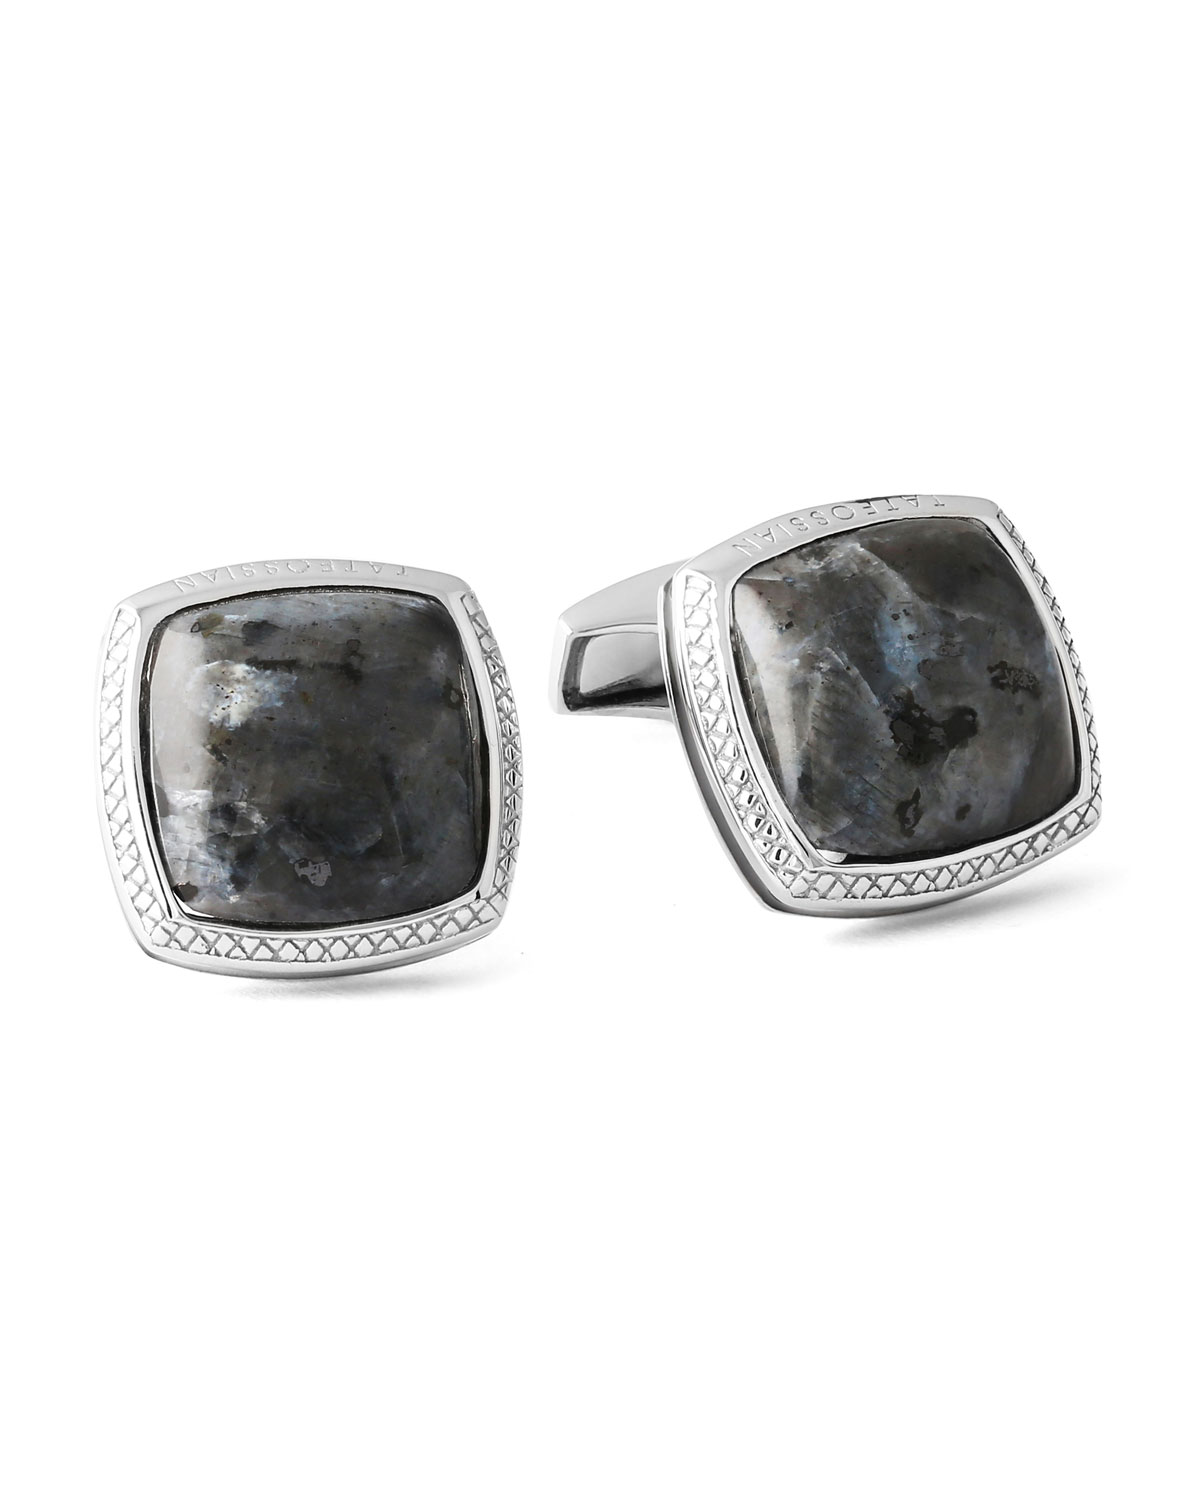 Men's Limited-Edition Square Larvikite Cuff Links